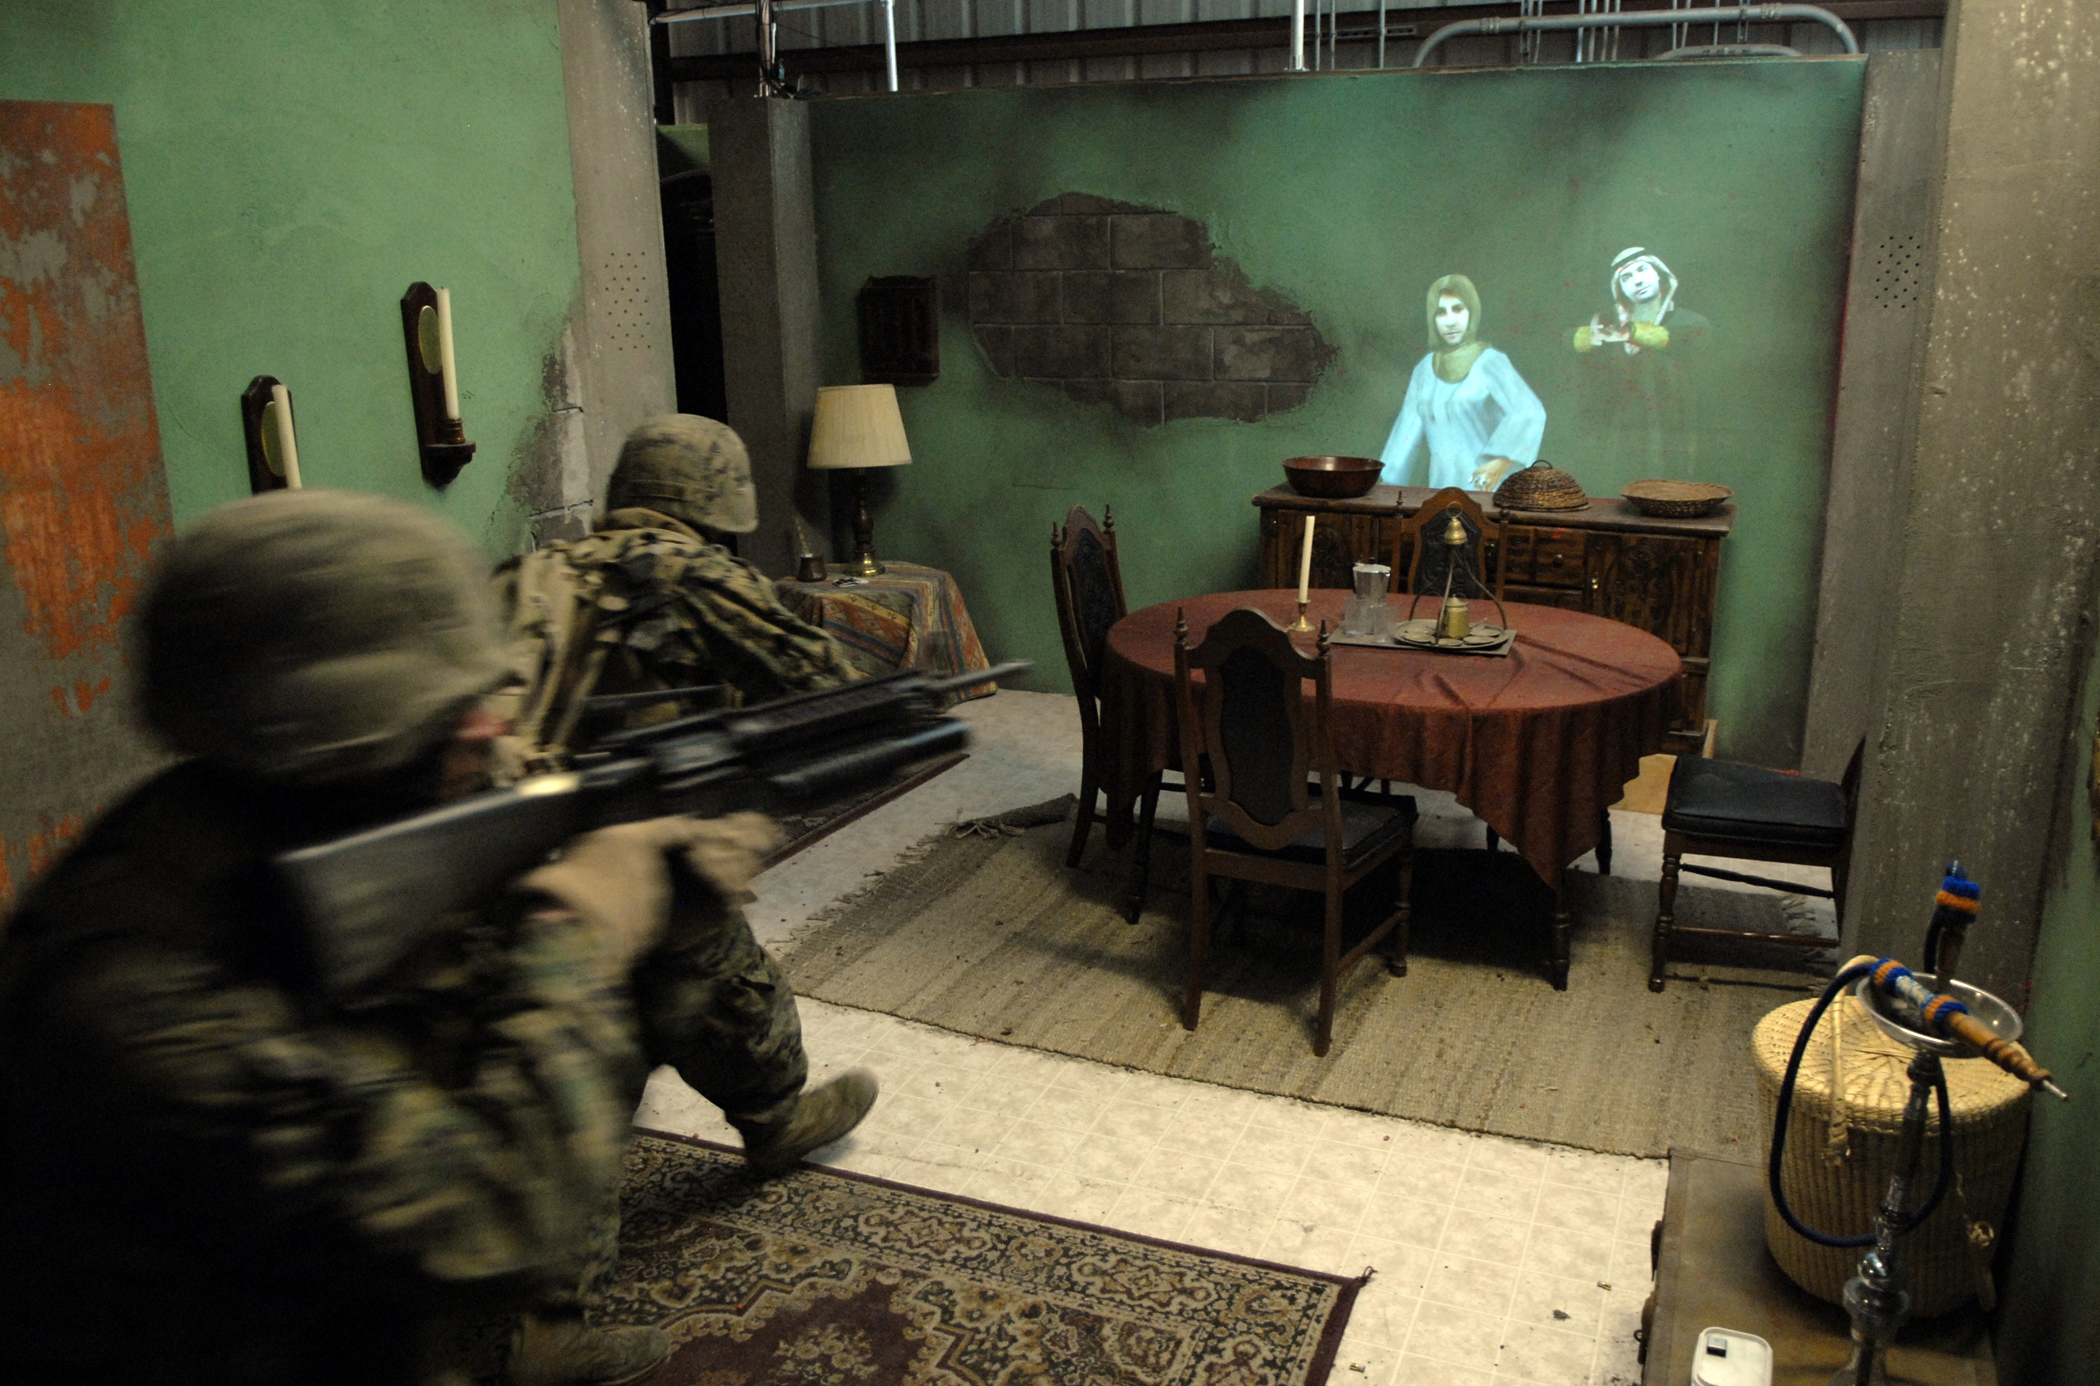 U.S. Marines with 3rd Battalion, 1st Marine Regiment, confront avatars, or virtual humans, while clearing a room at the Office of Naval Research Infantry Immersion Trainer (IIT) located at the I Marine Expeditionary Force Battle Simulation Center at Marine Corps Base Camp Pendleton, Calif., Feb. 19, 2008. US Navy photo.